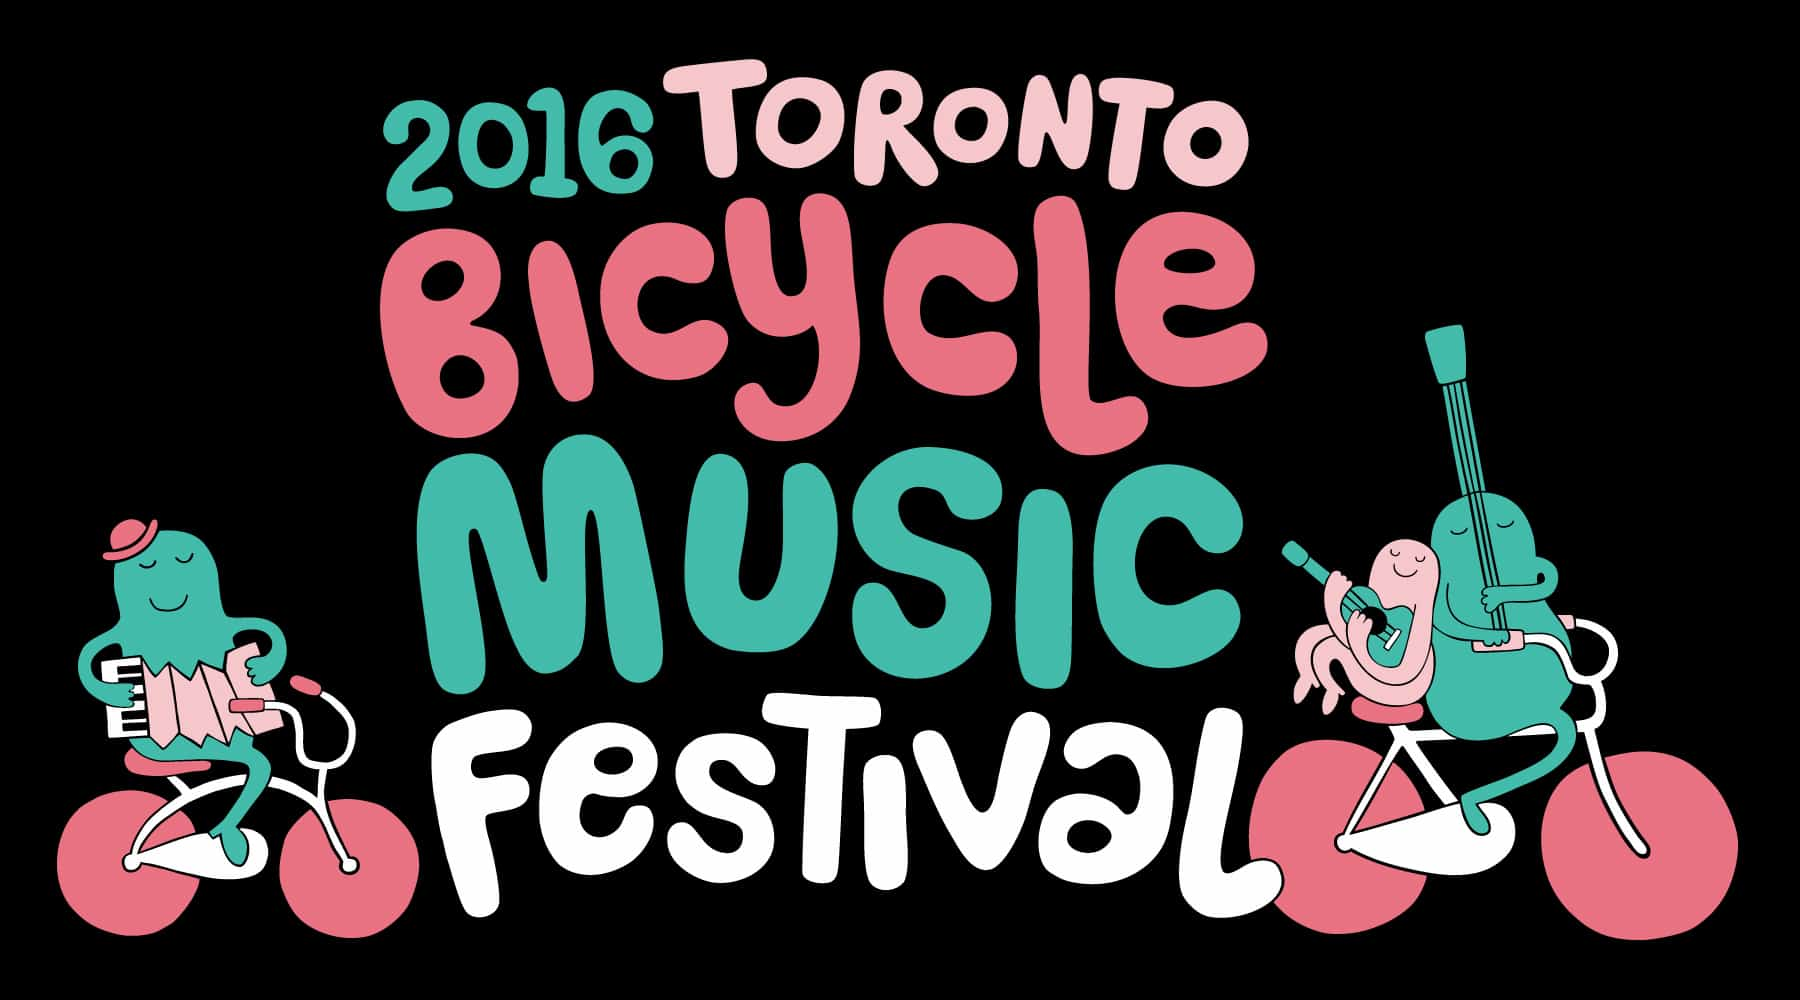 Our Pick of the Week: Toronto Bicycle Music Festival